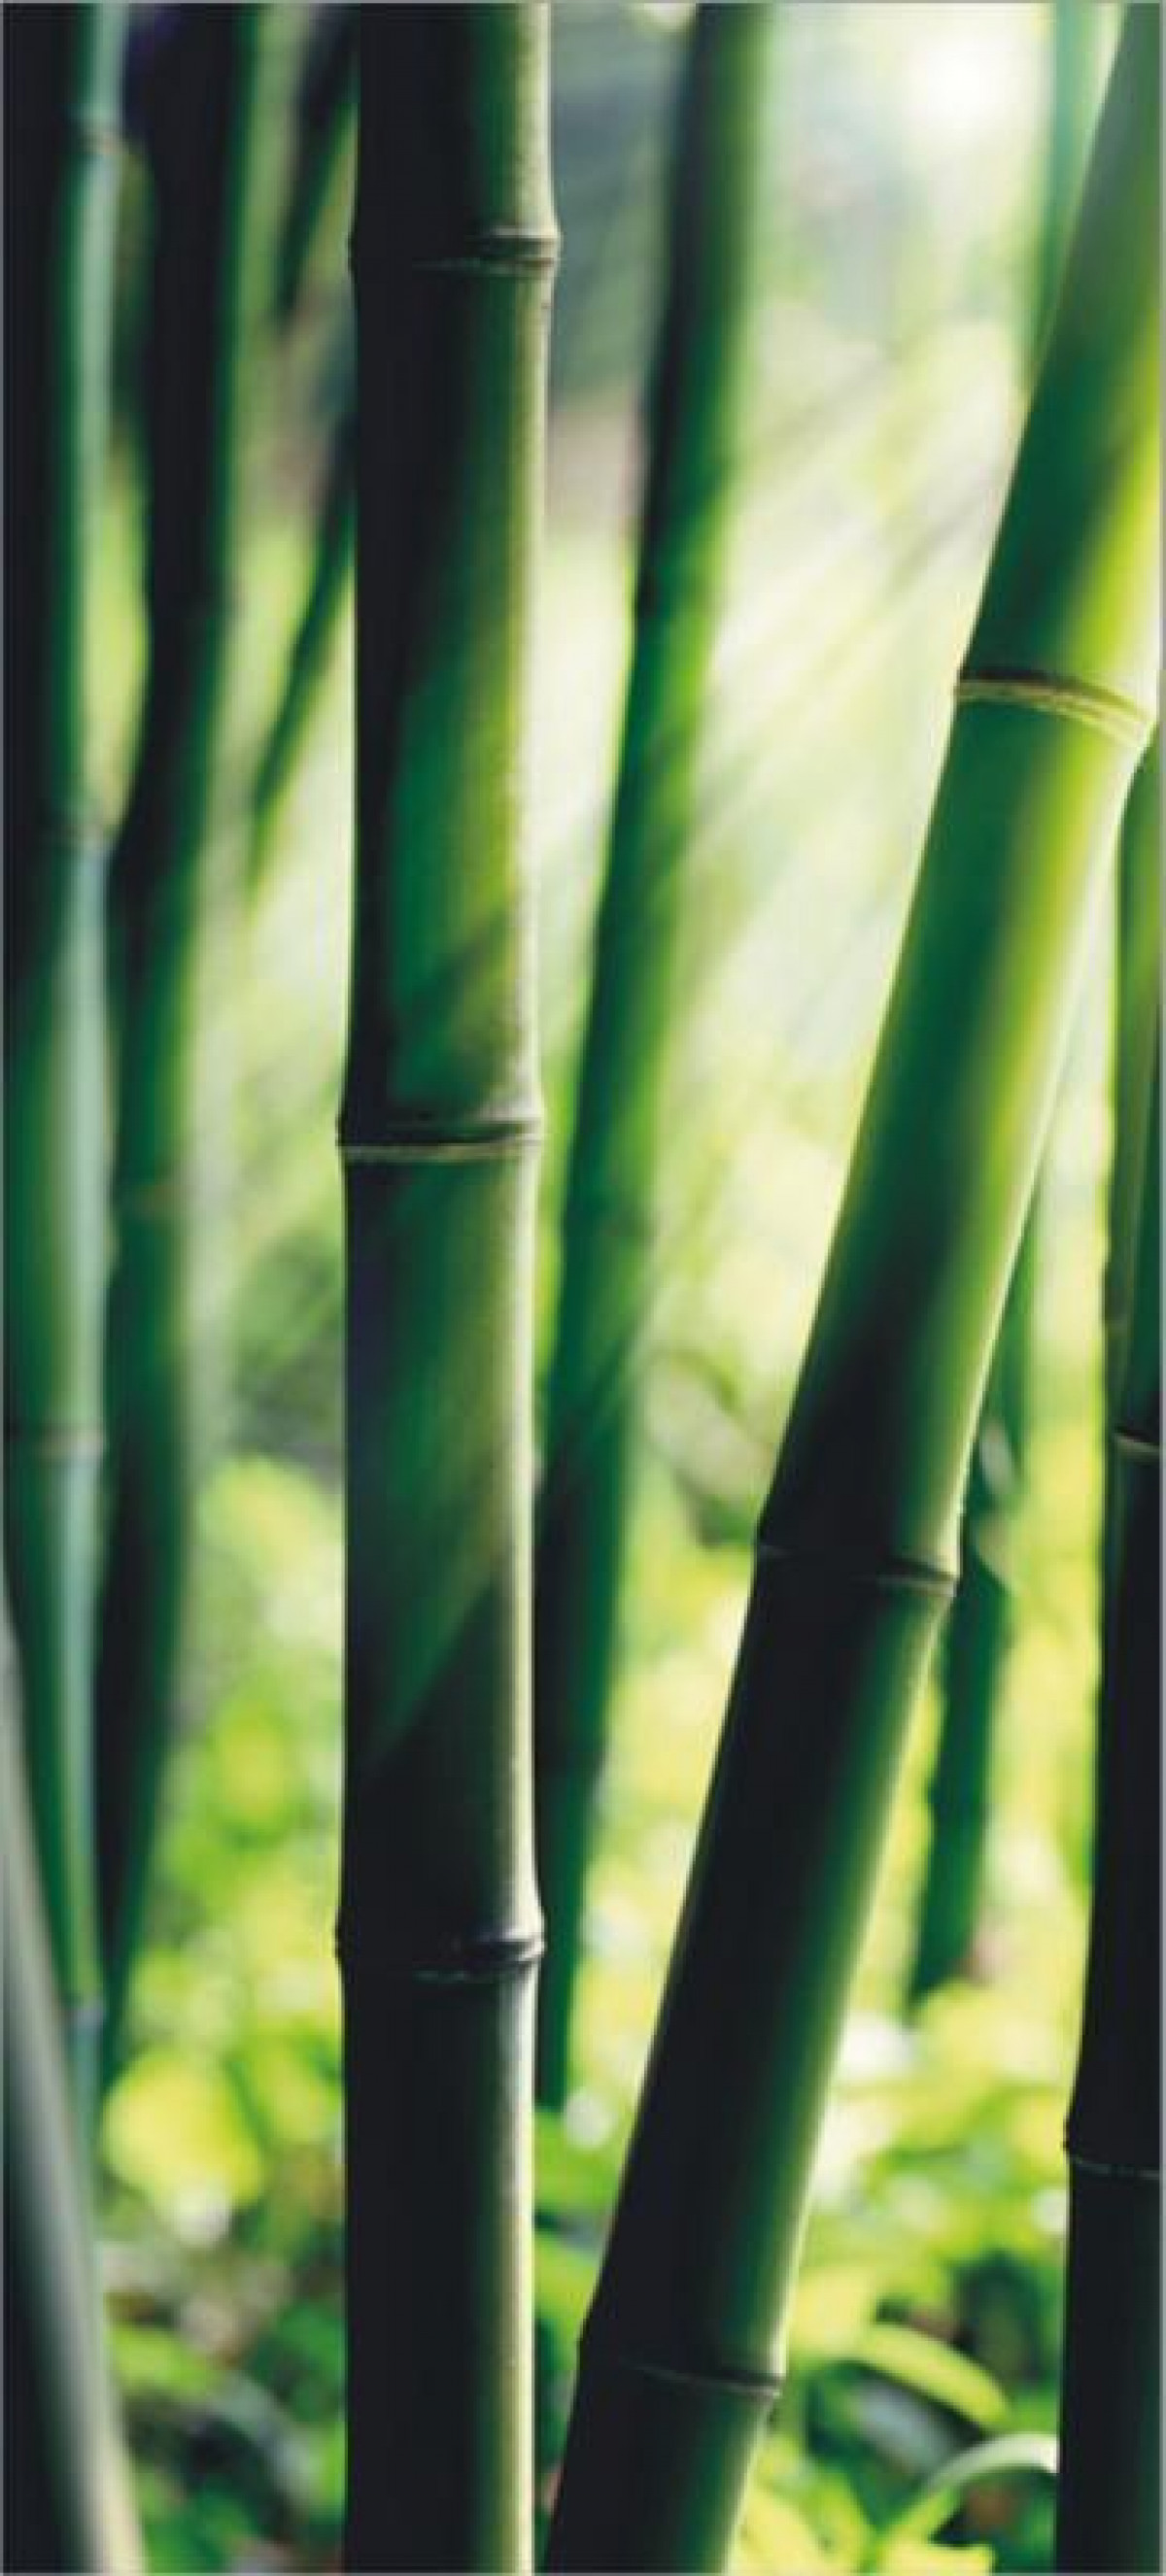 Bamboo, intissé photo mural, 90 x 202 cm, 1 part